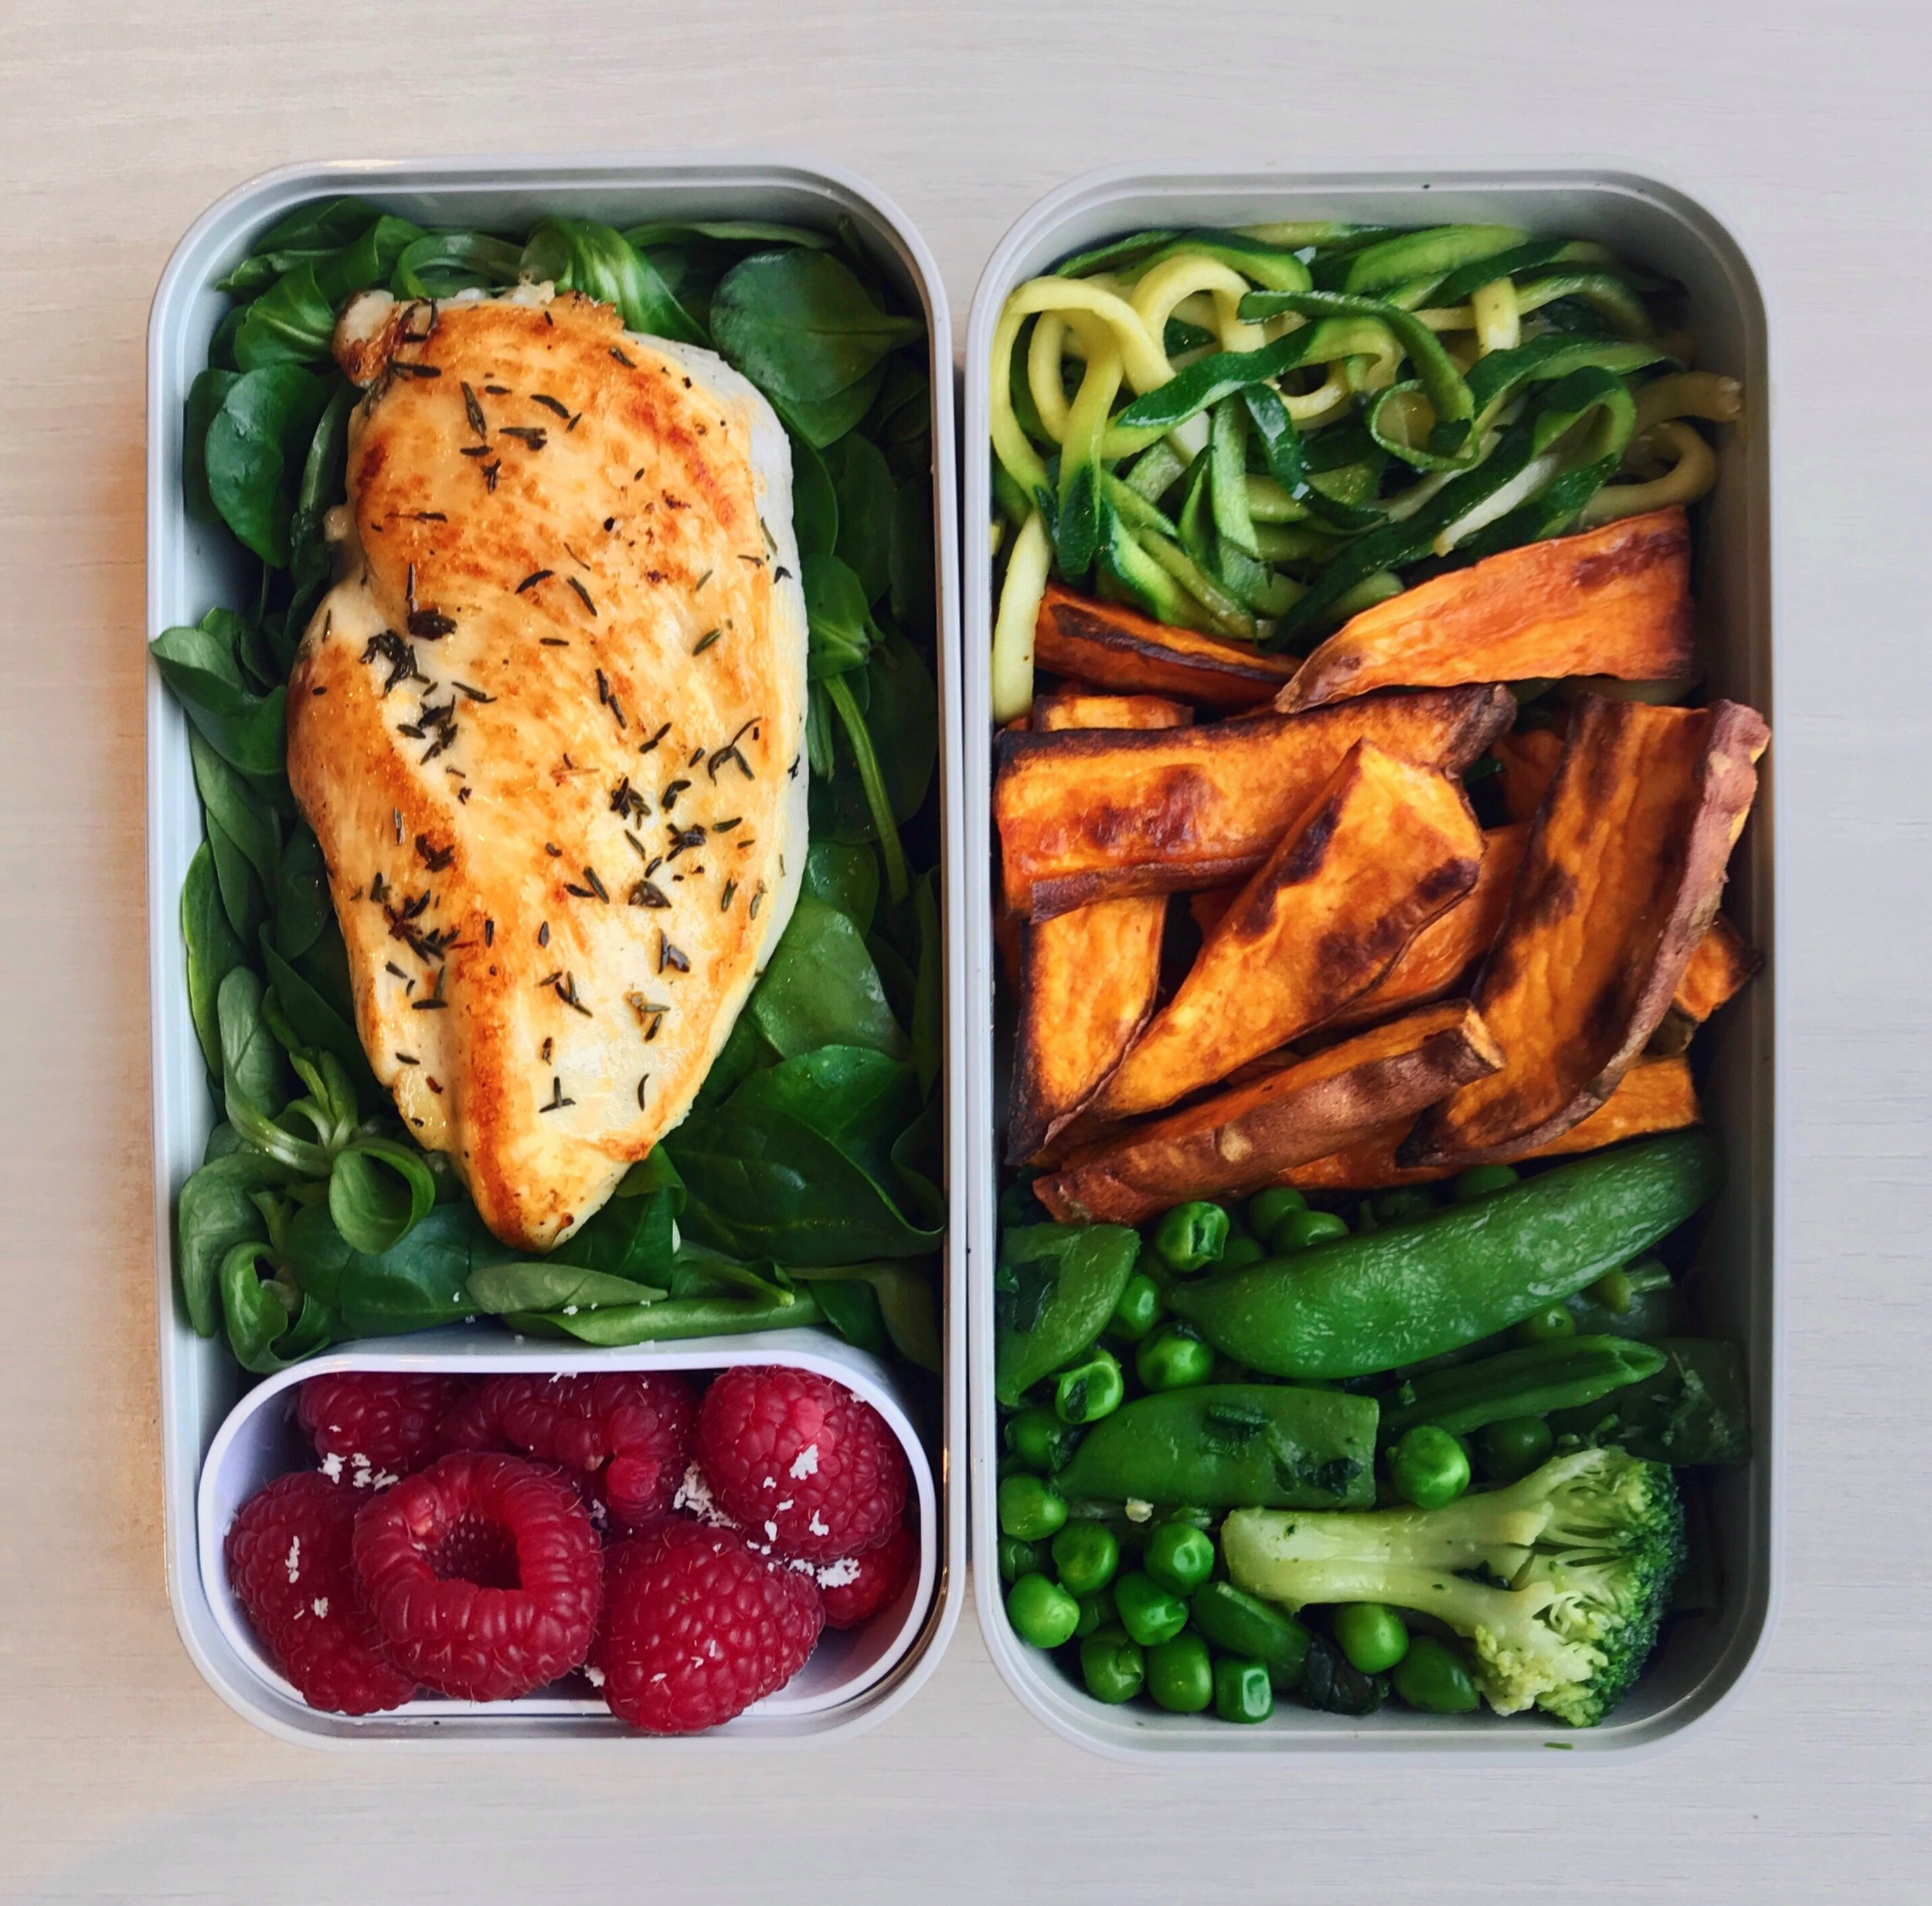 Grilled Chicken & Sweet Potatoes